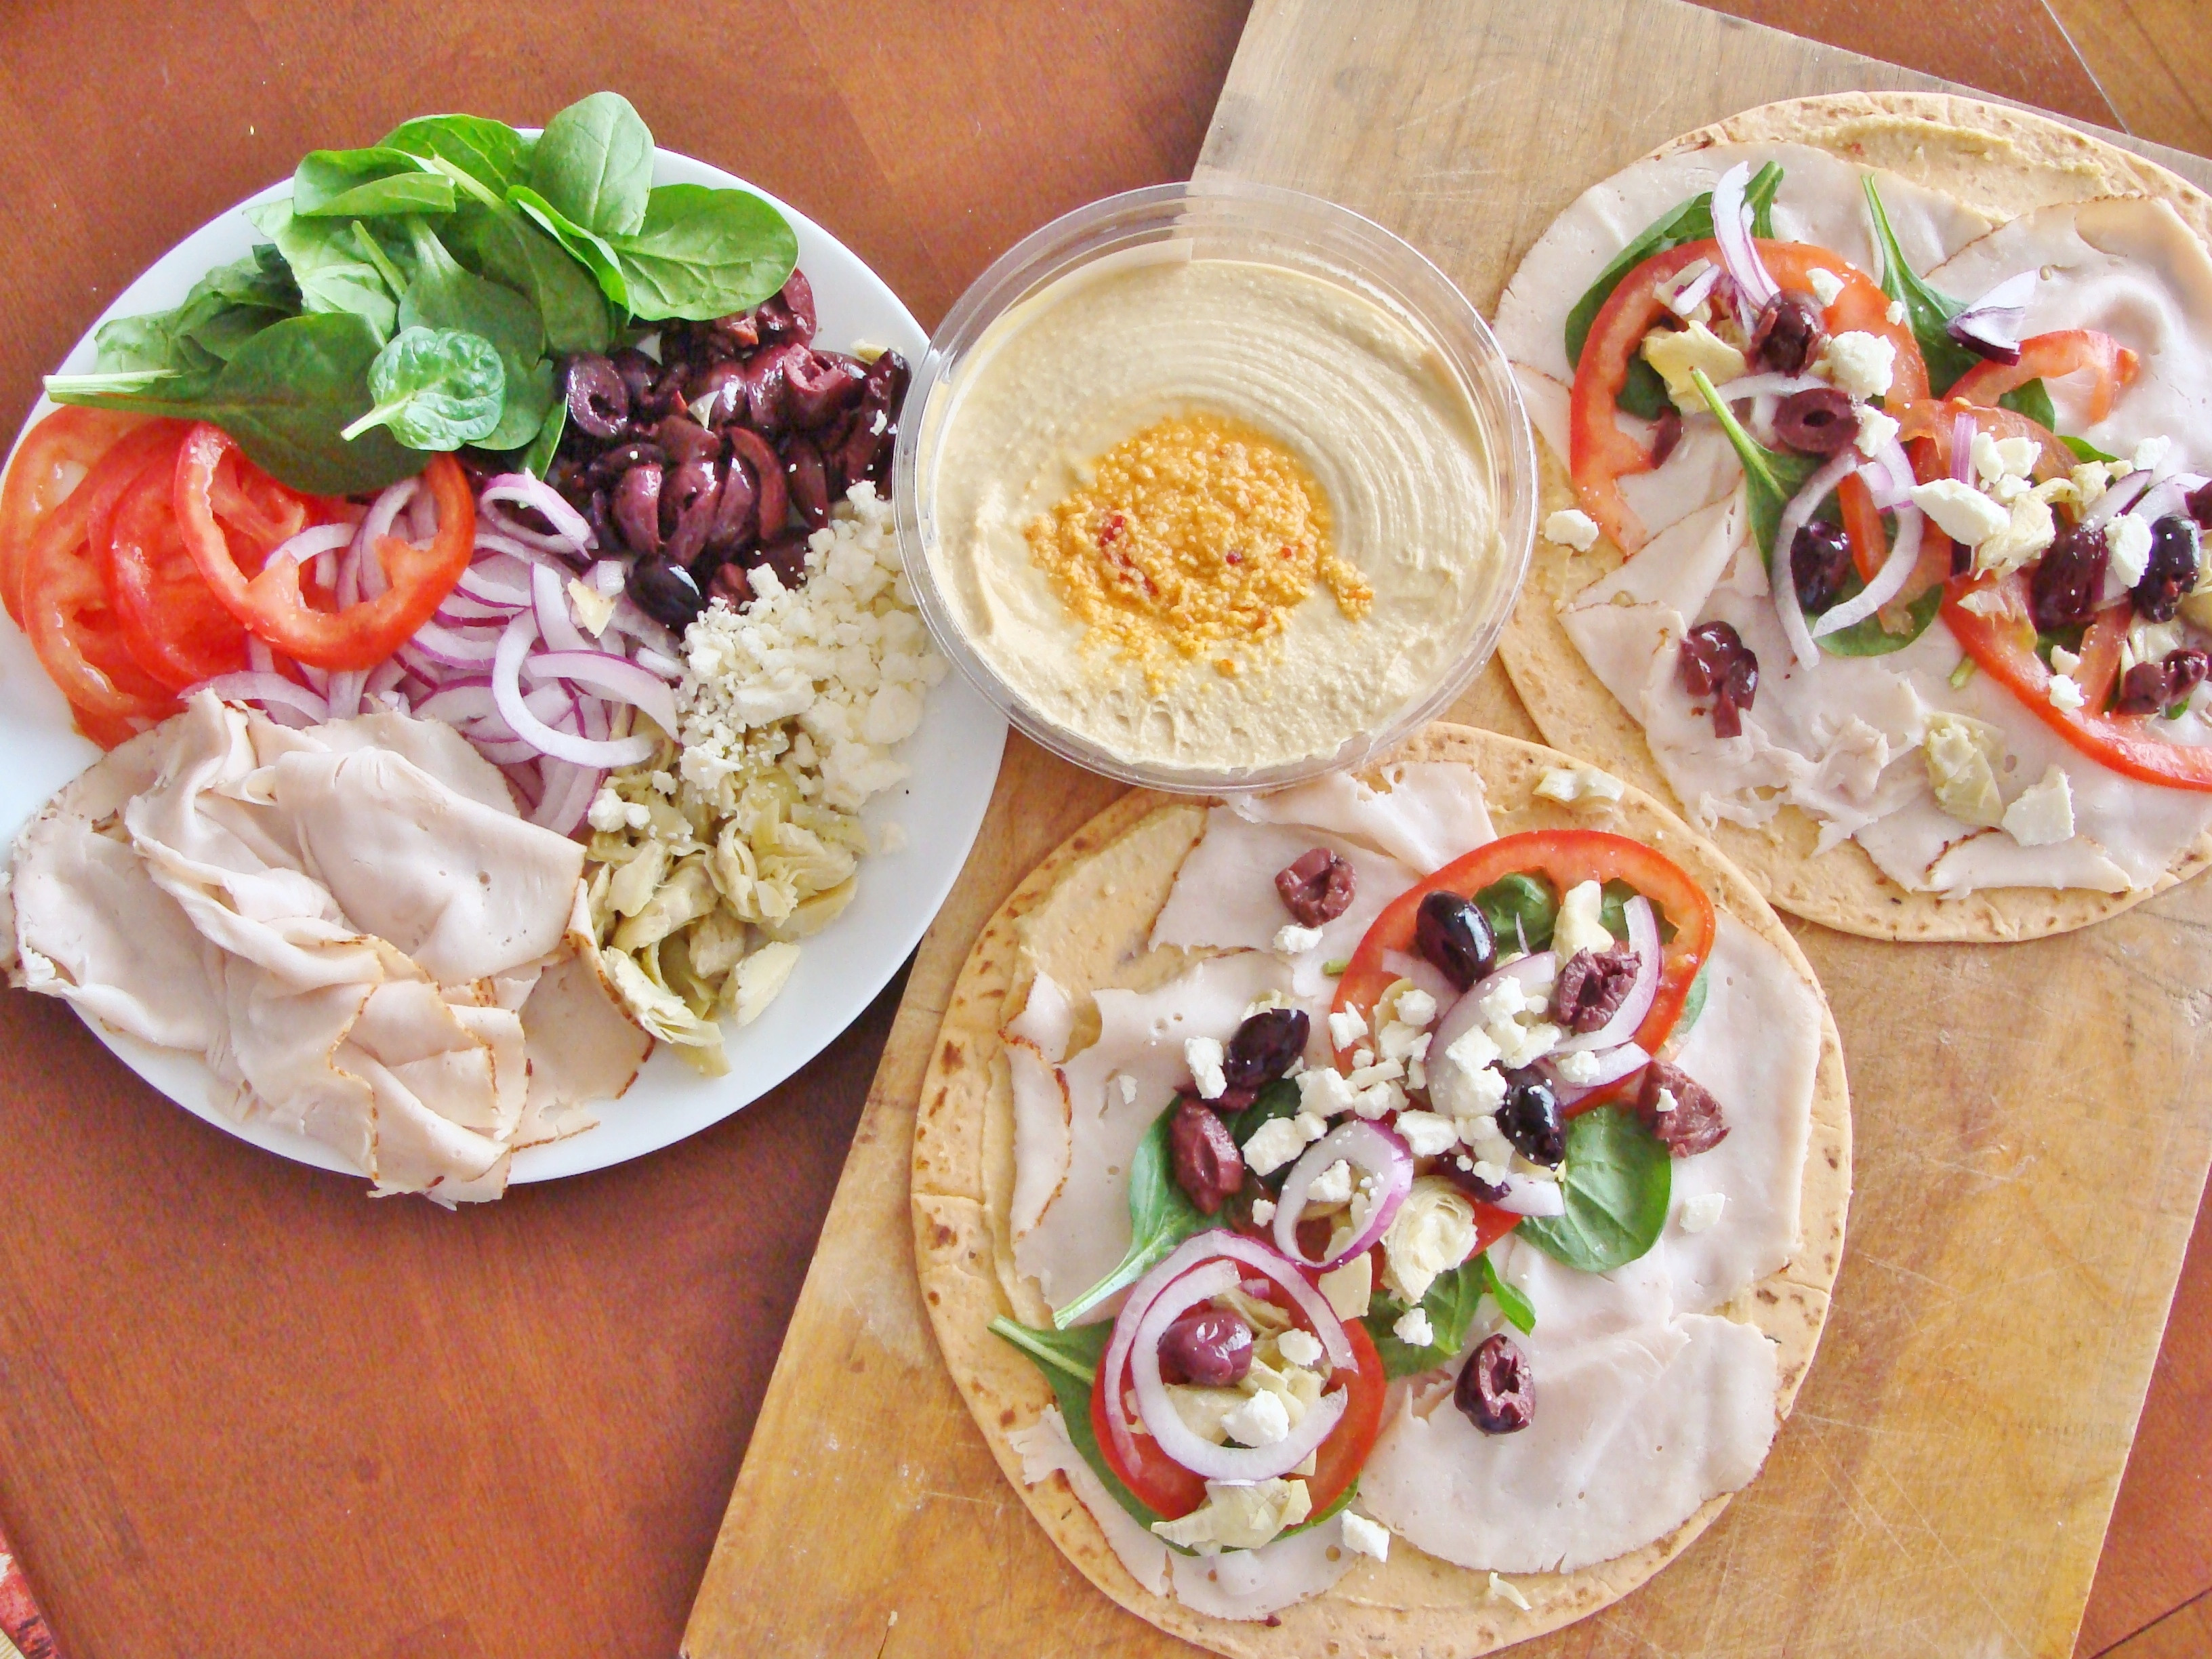 Healthy Filling Lunches For Work  lunch wraps